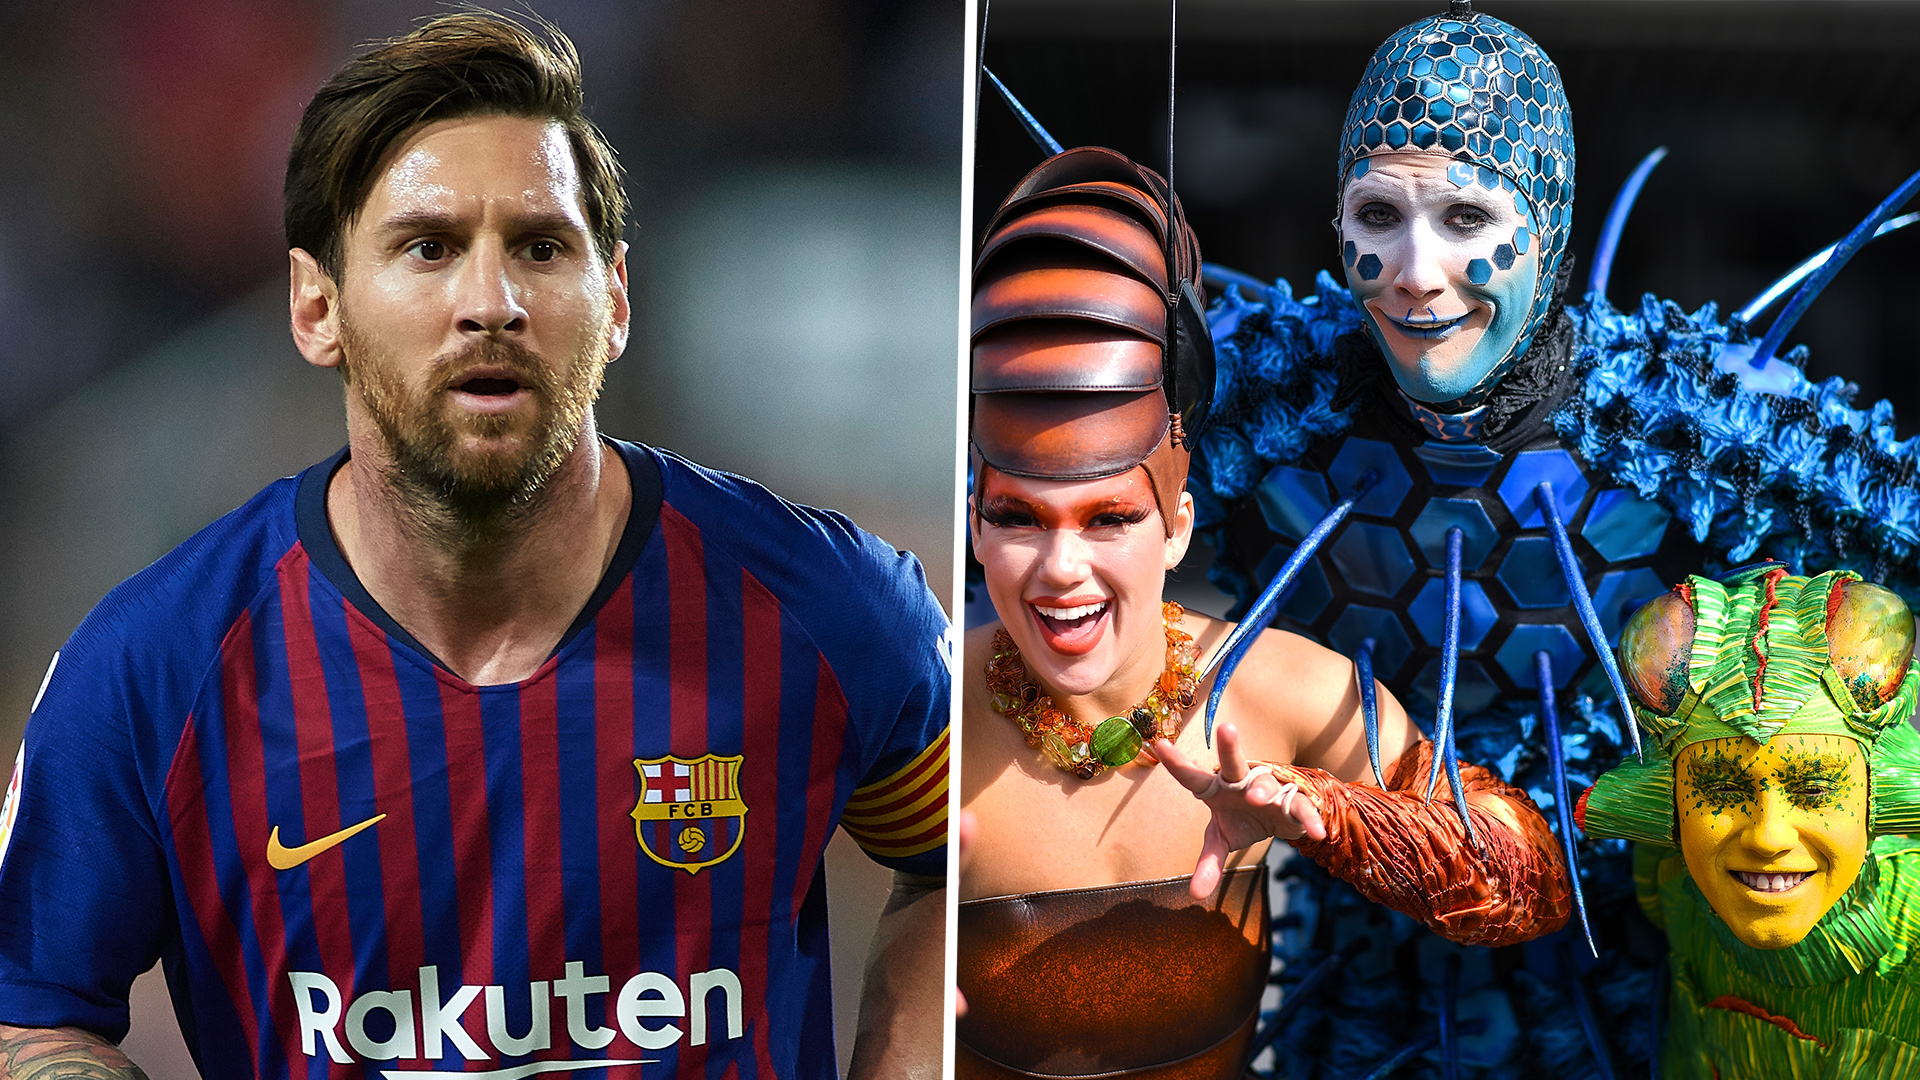 Messi announces Cirque du Soleil show based on his life